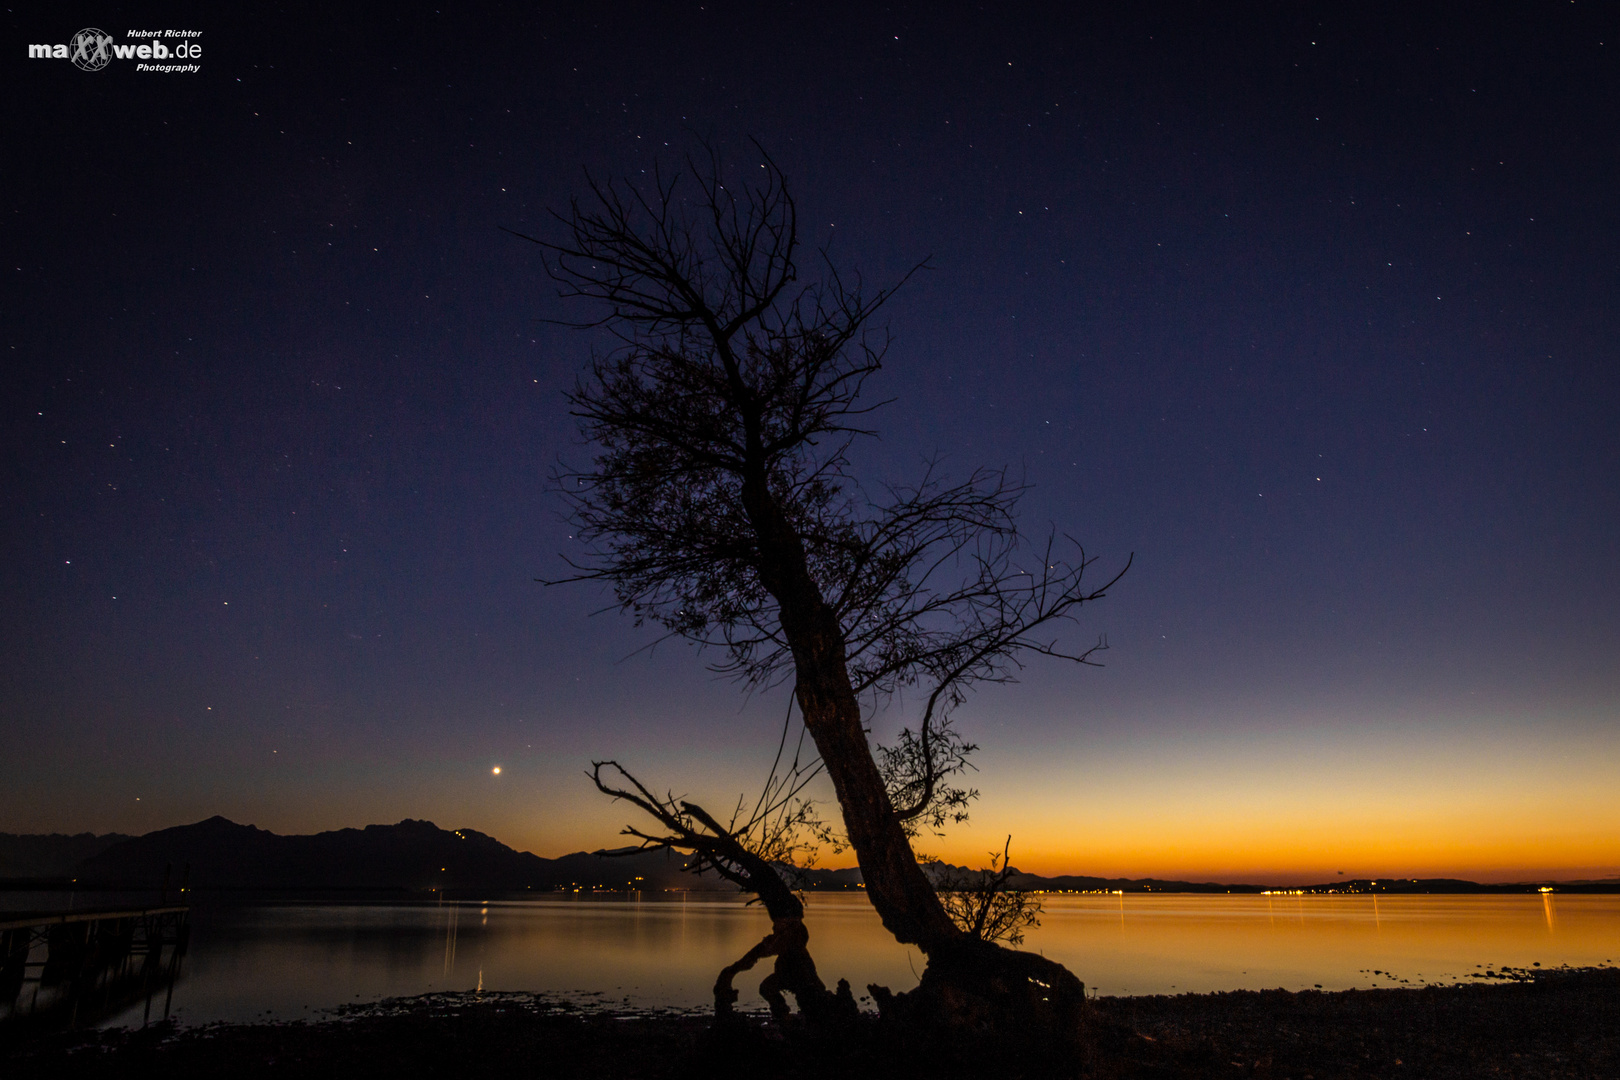 The old Tree and the Lake